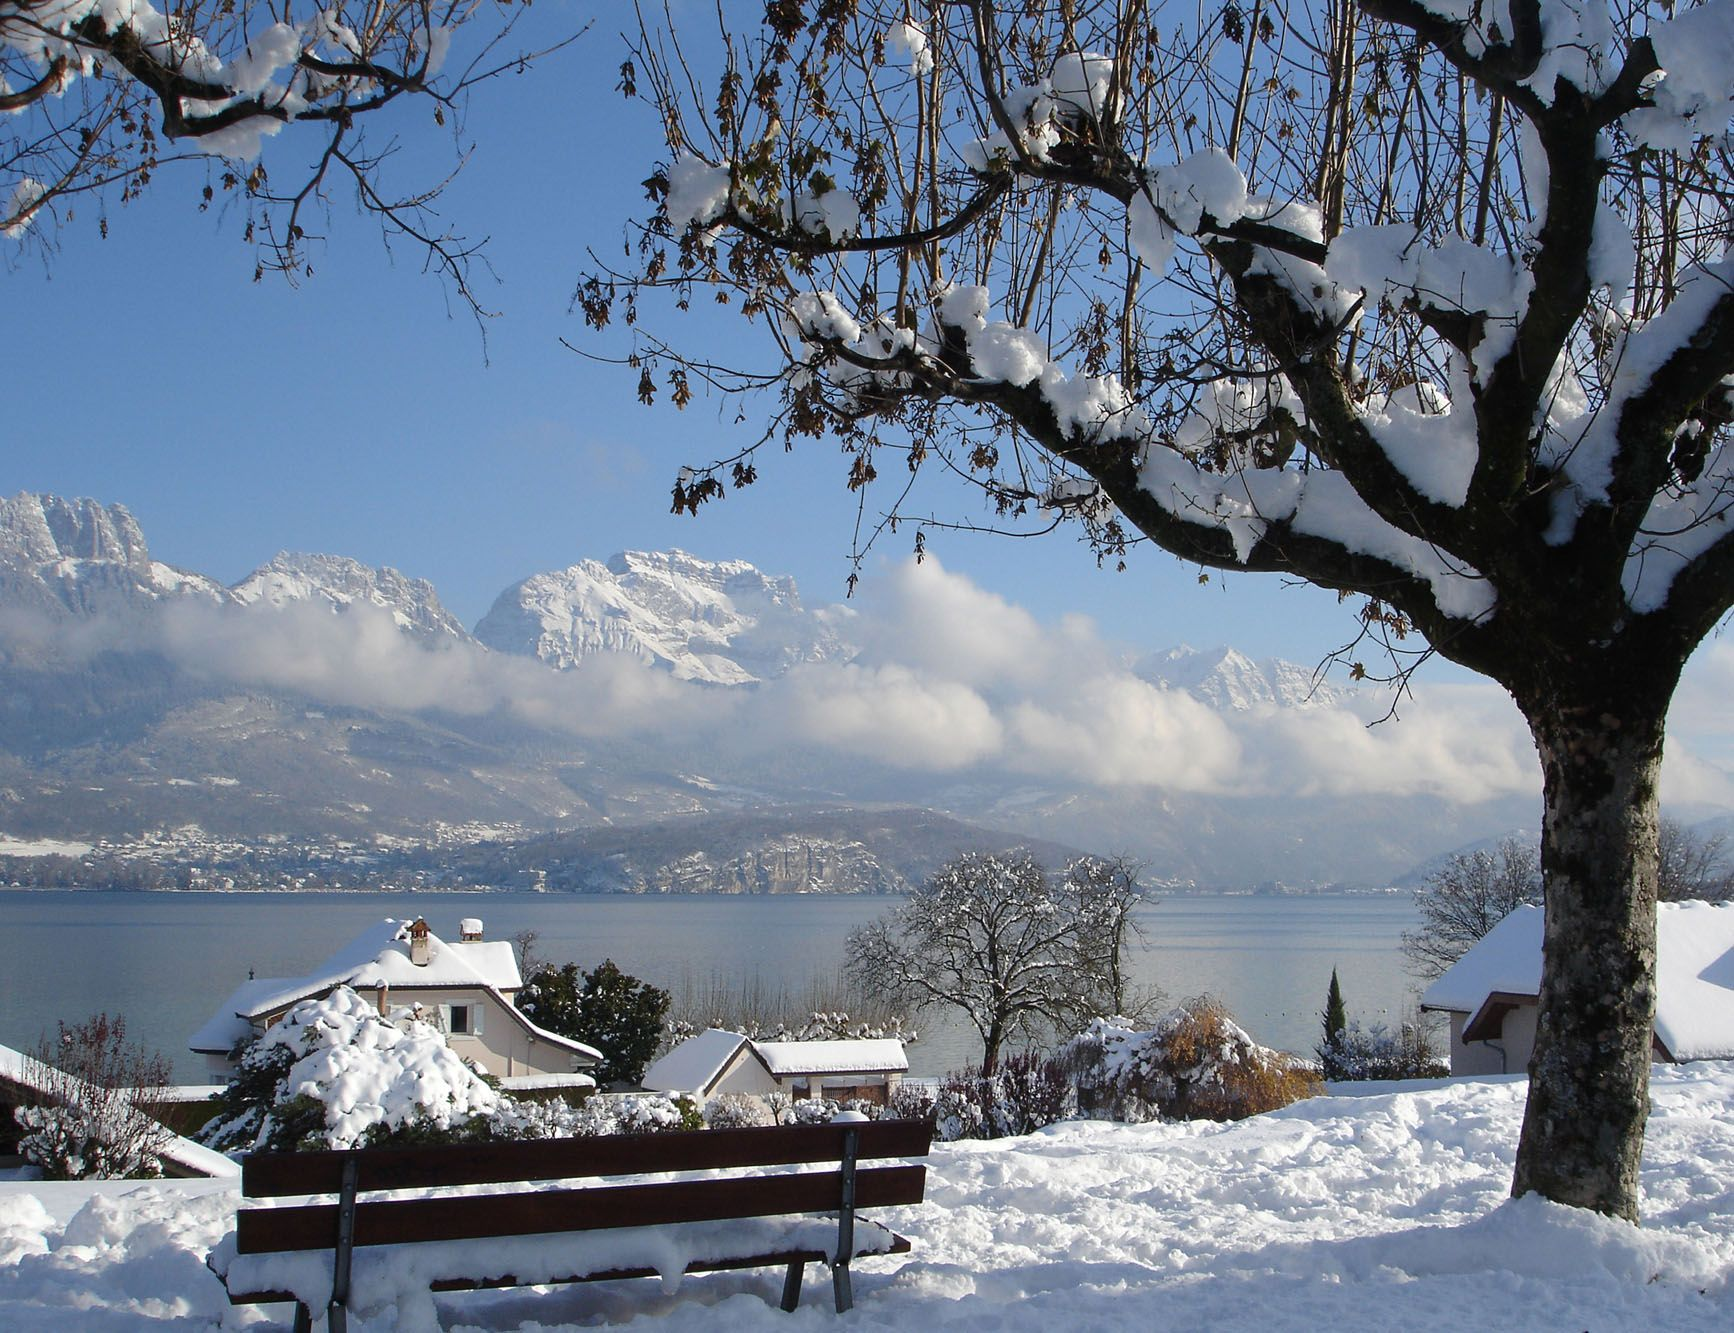 15 Best Things to Do in Annecy (France) - Page 2 of 15 ... |Annecy France Attractions